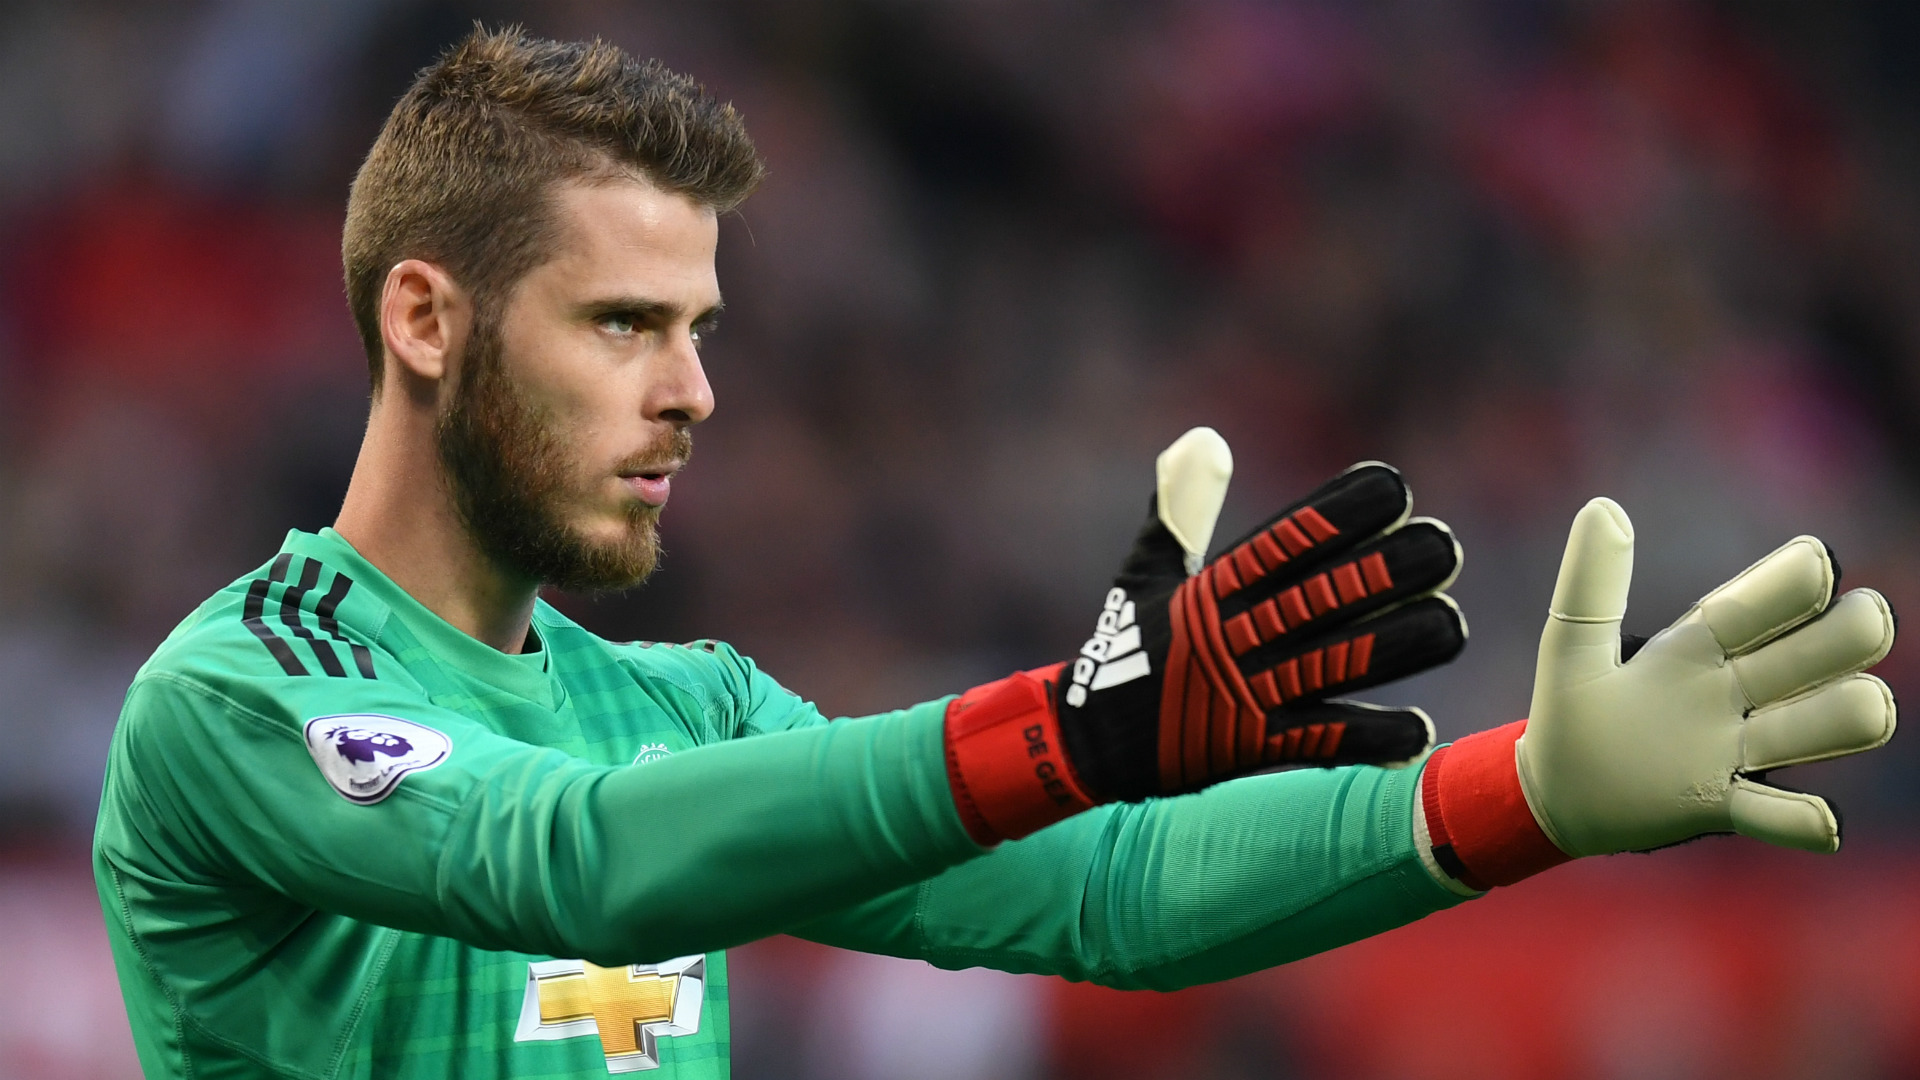 Man Utd Transfers: De Gea Could Leave Man Utd In Search Of